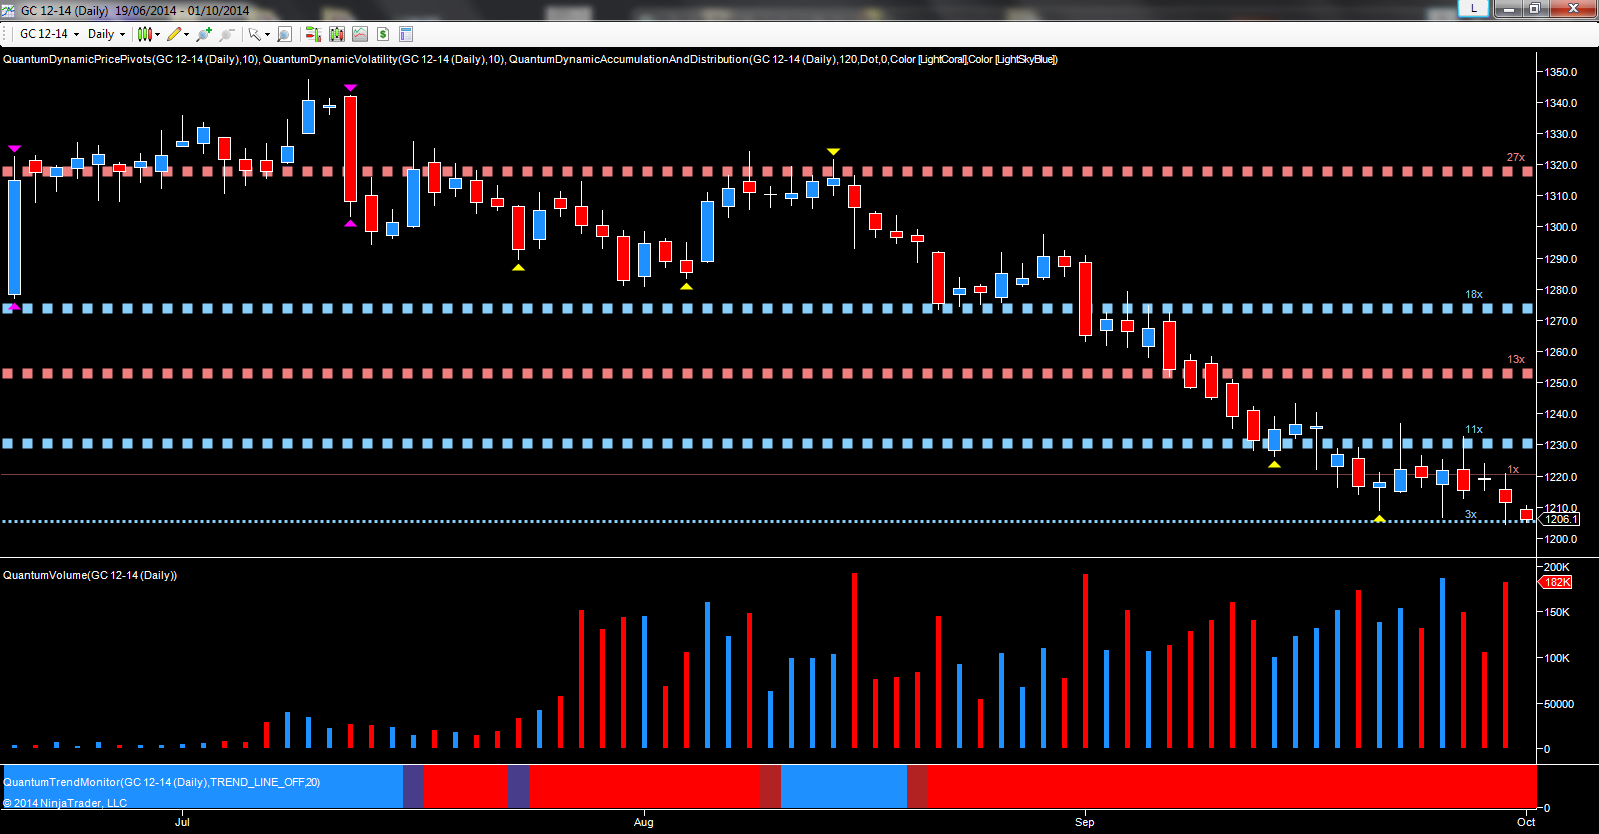 December gold futures - daily chart